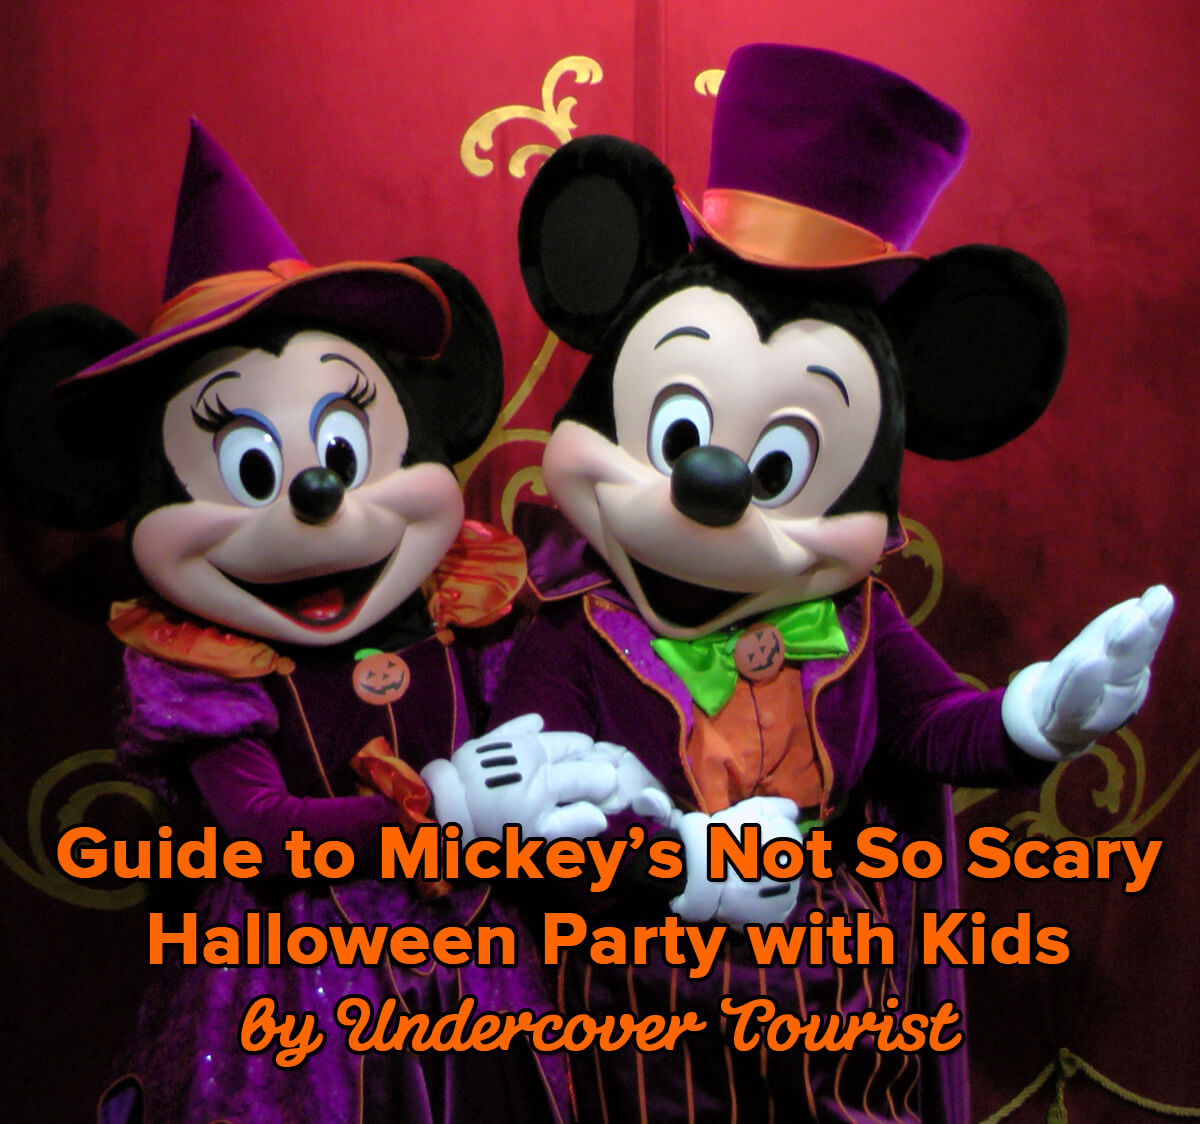 Guide to Mickey's Not So Scary Halloween Party